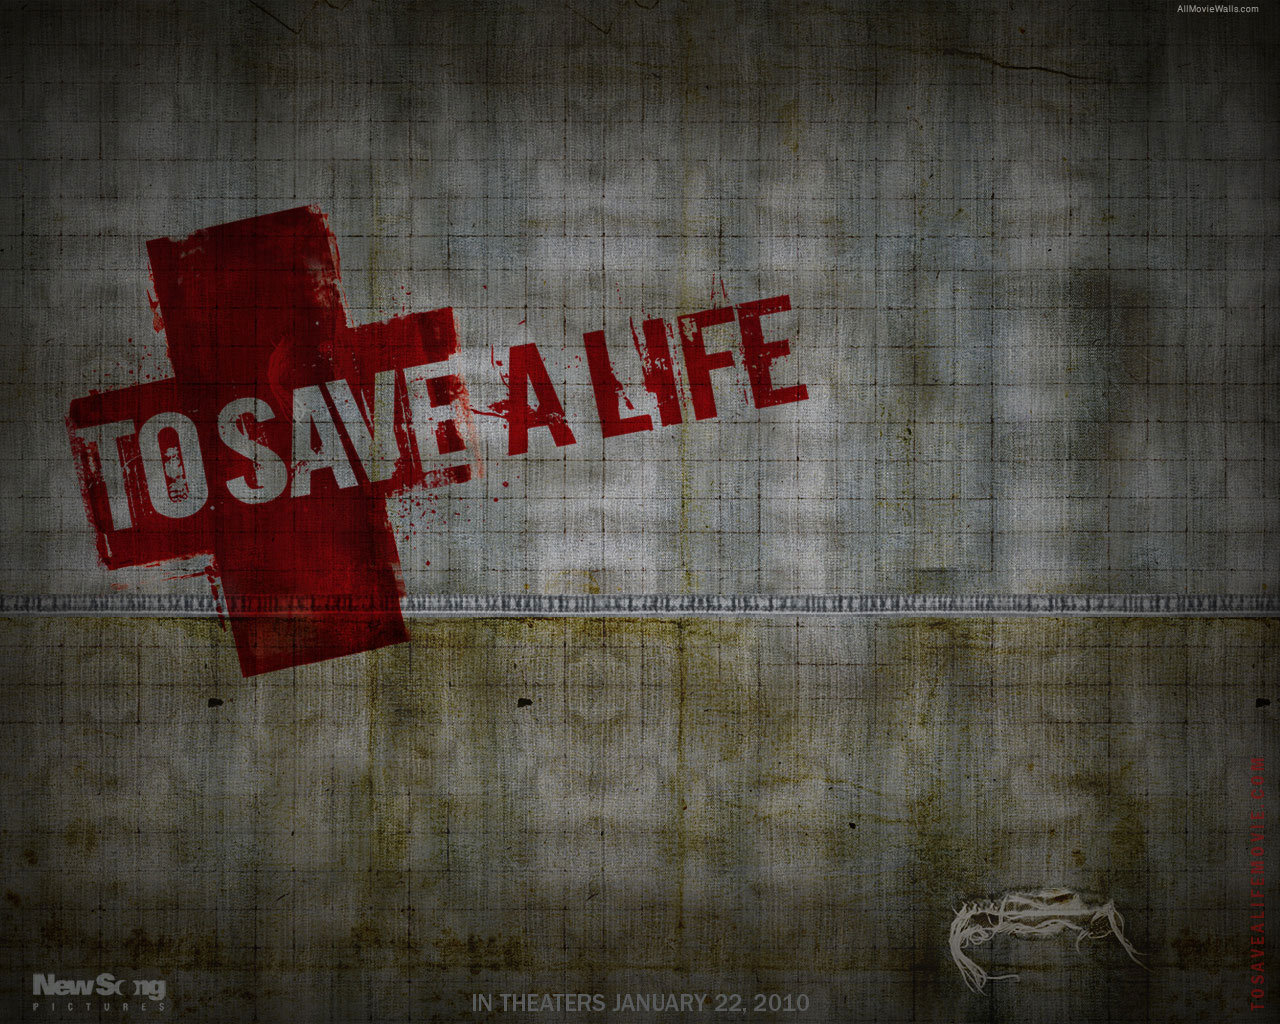 Movies To Save a Life